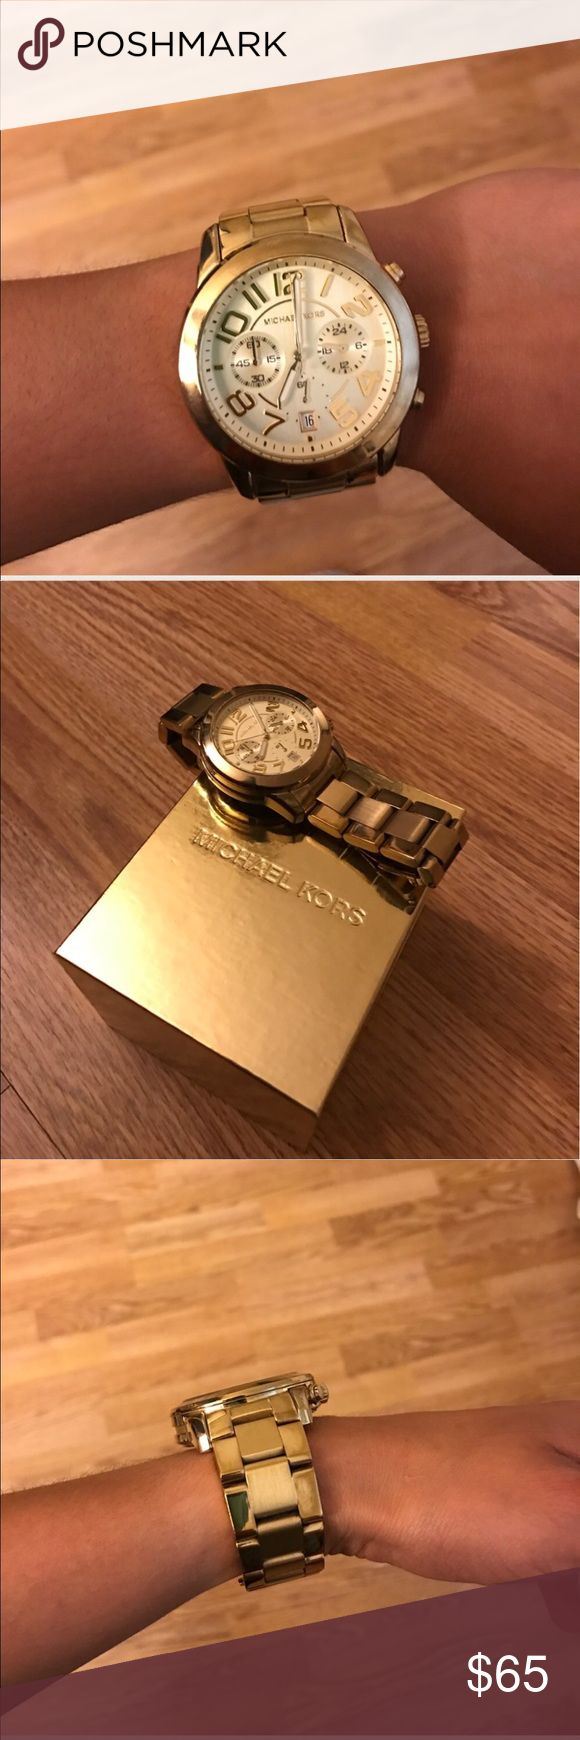 MichaelKors Gold-Tone Ladies Watch⌚️price dropped! Used watch no huge scratches . Gold Tone Watch Measuring Approximately 45 Mm Across The Face. Cult Classic Watch By Michael Kors Perfect For Day Or Night! Gentle Wear And Tear. Slight Discoloration on side & Link But Won'T Be Seen When Watch Clasp Closed. A Must Have! I have the links & return tag . Purchased @ Macy's . Battery recently replaced . MICHAEL Michael Kors Accessories Watches